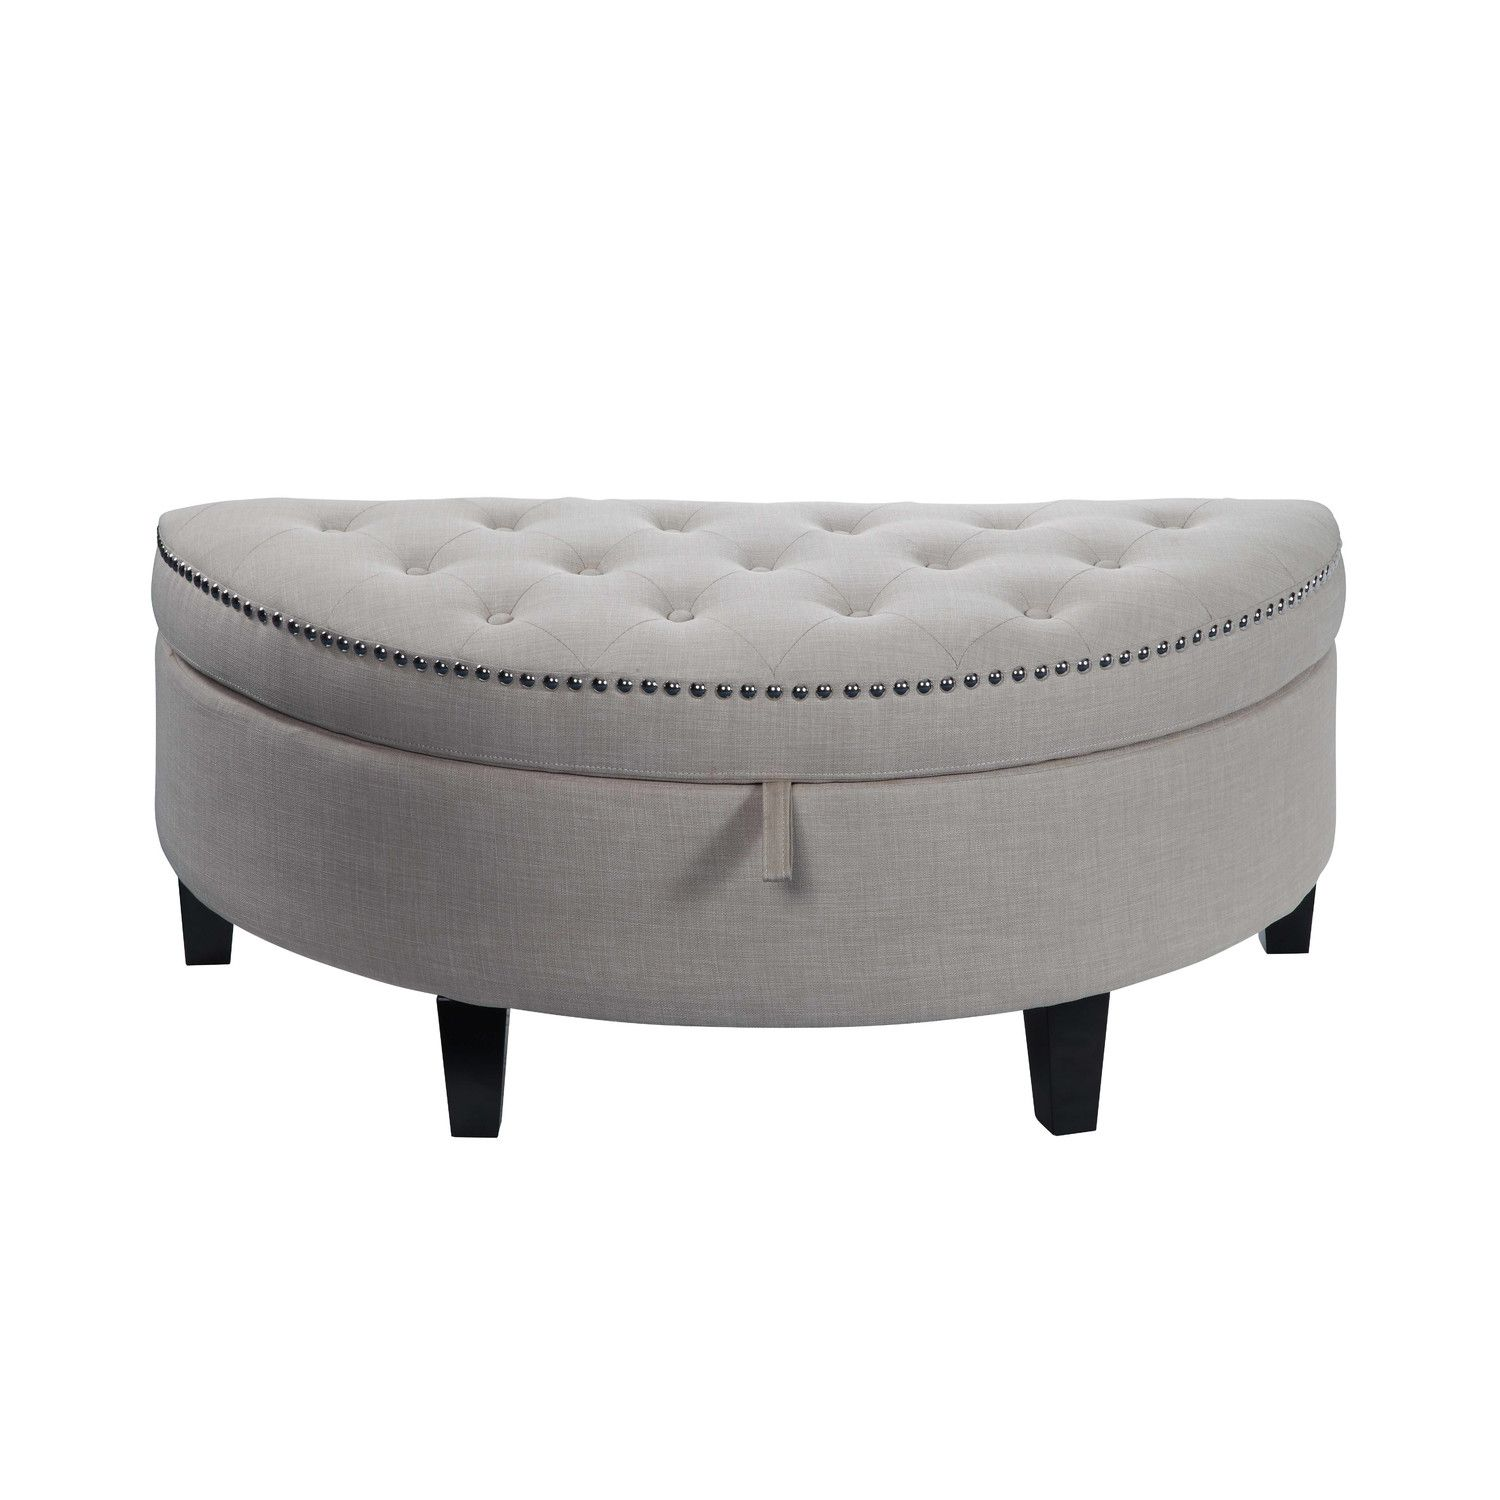 premium selection 3619d ba7d4 Semi circle gray storage ottoman. Possibly for the bedroom ...